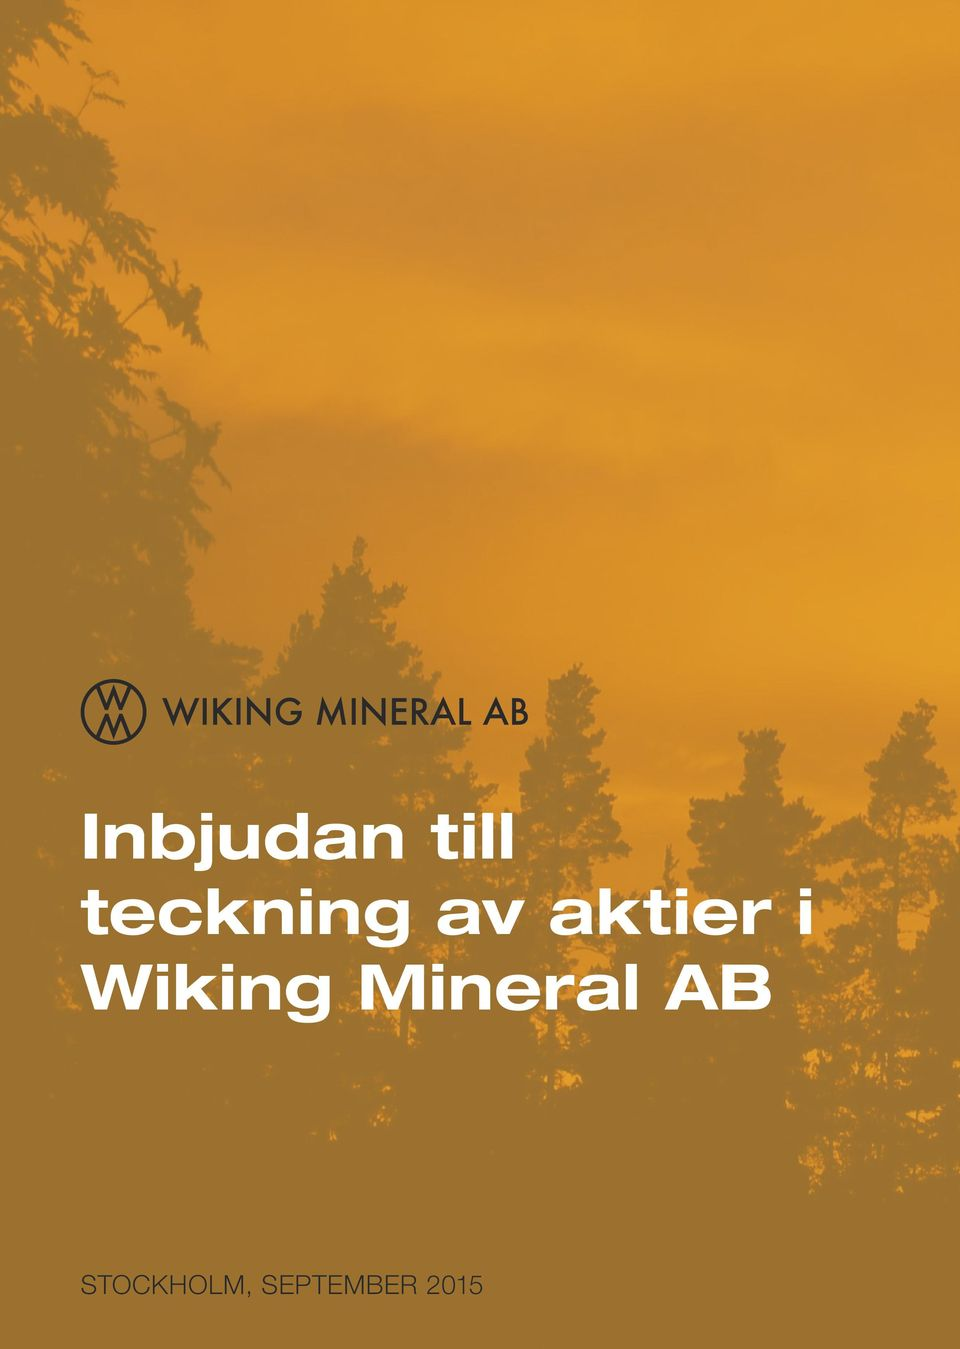 i Wiking Mineral AB